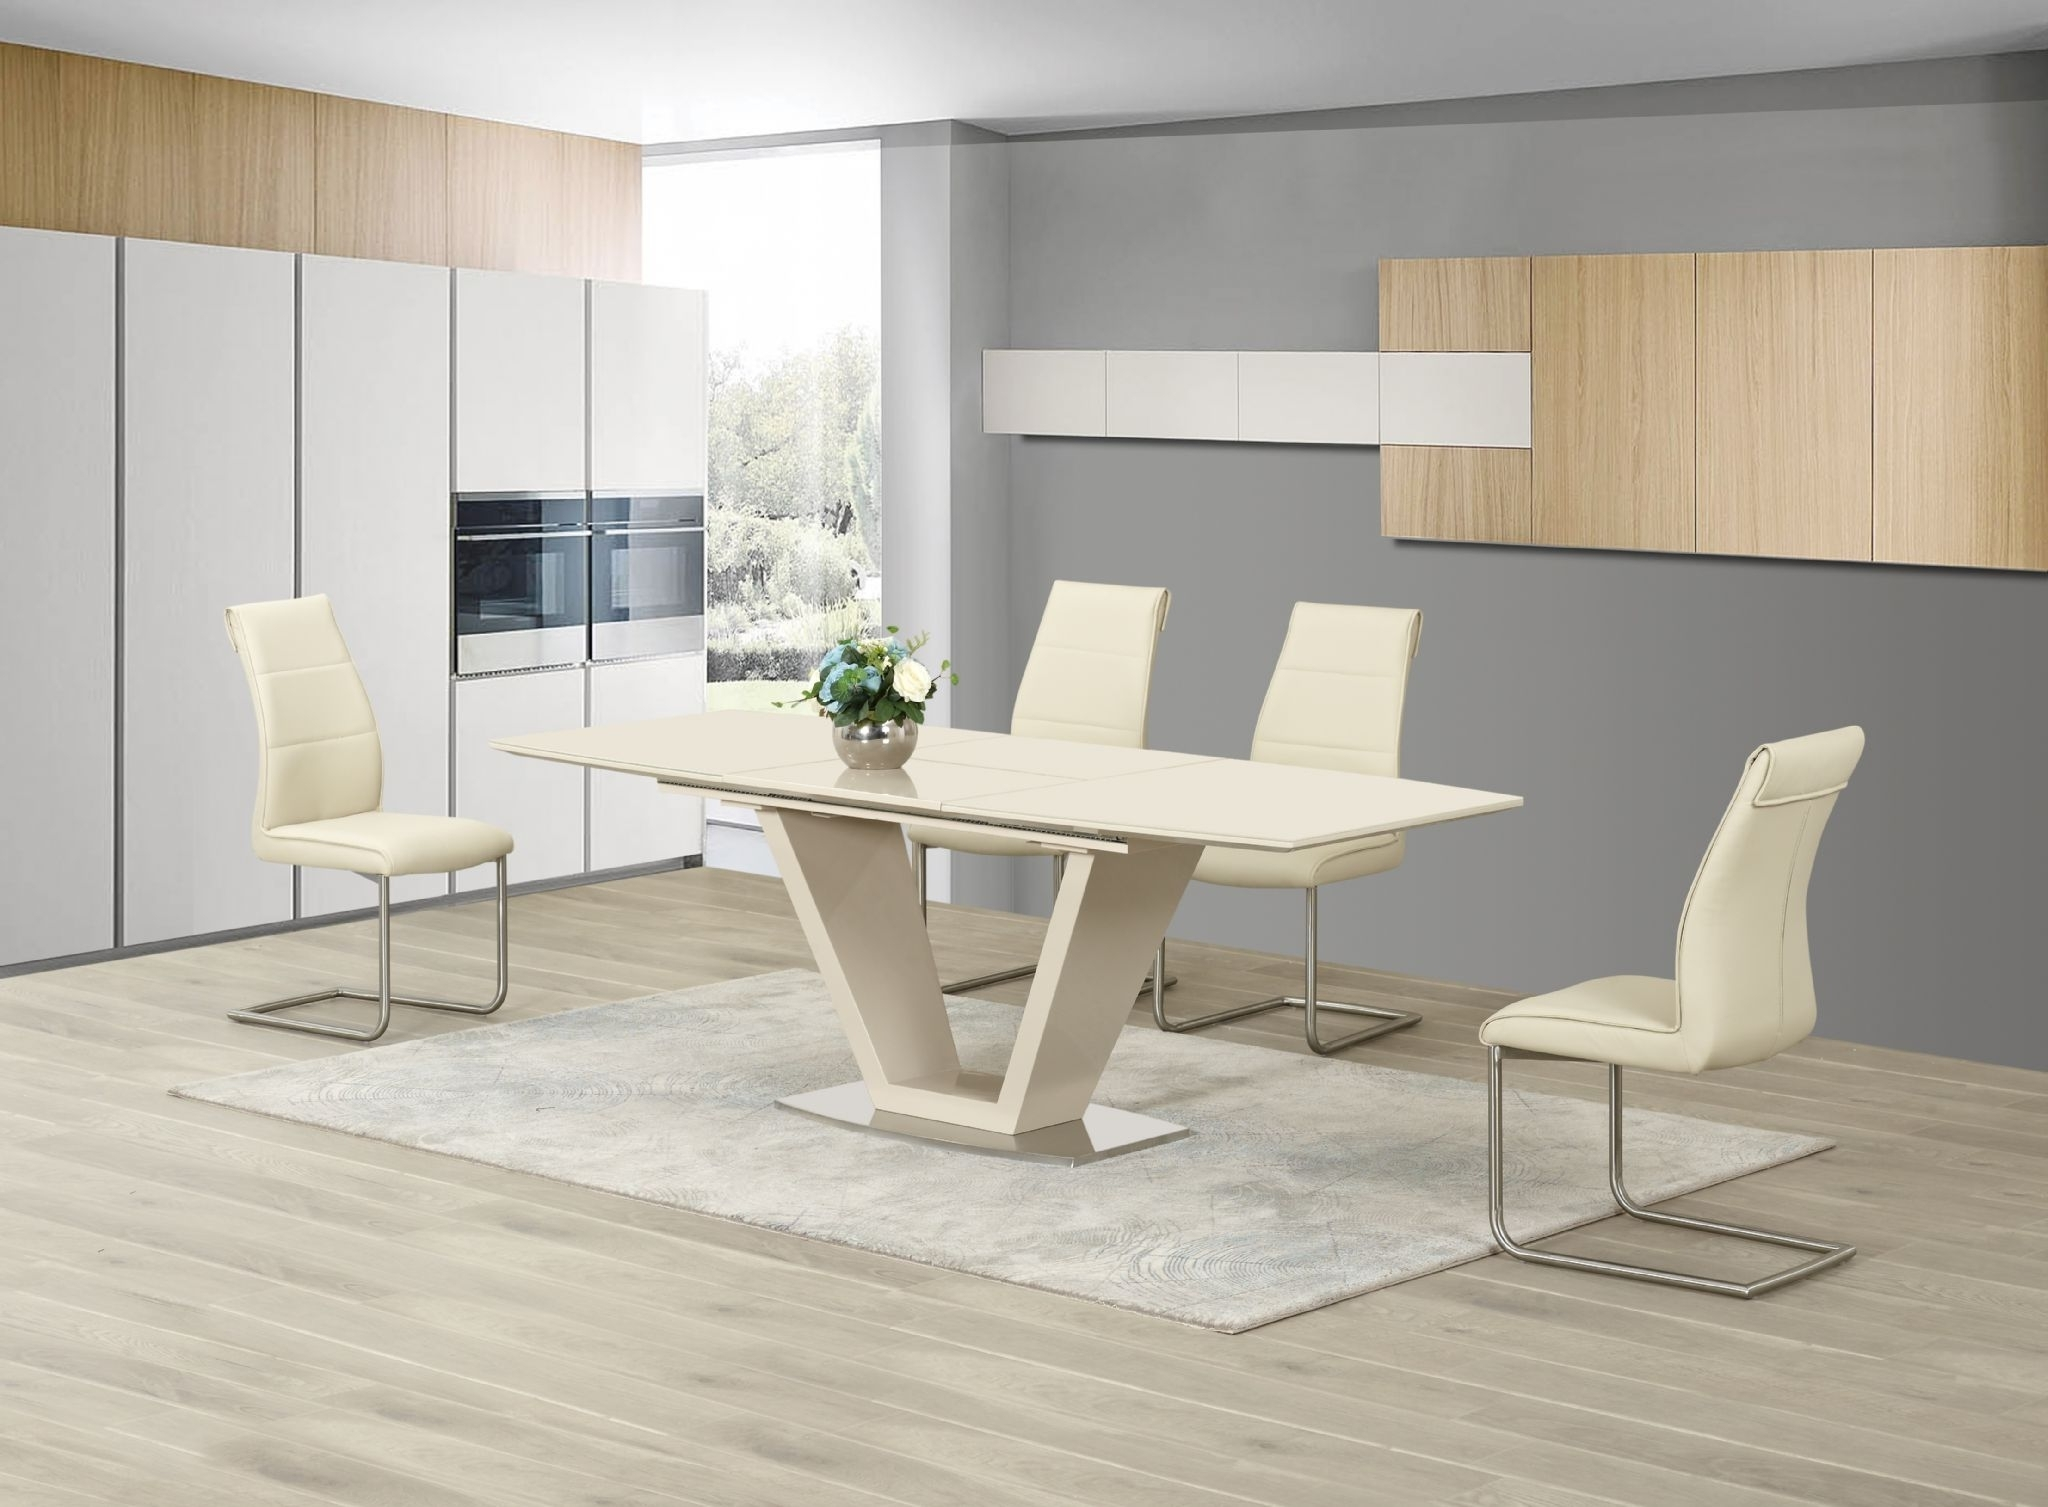 Ga Loriga Cream Gloss Glass Designer Dining Table Extending 160 220 Throughout Most Recent High Gloss Dining Sets (View 13 of 25)